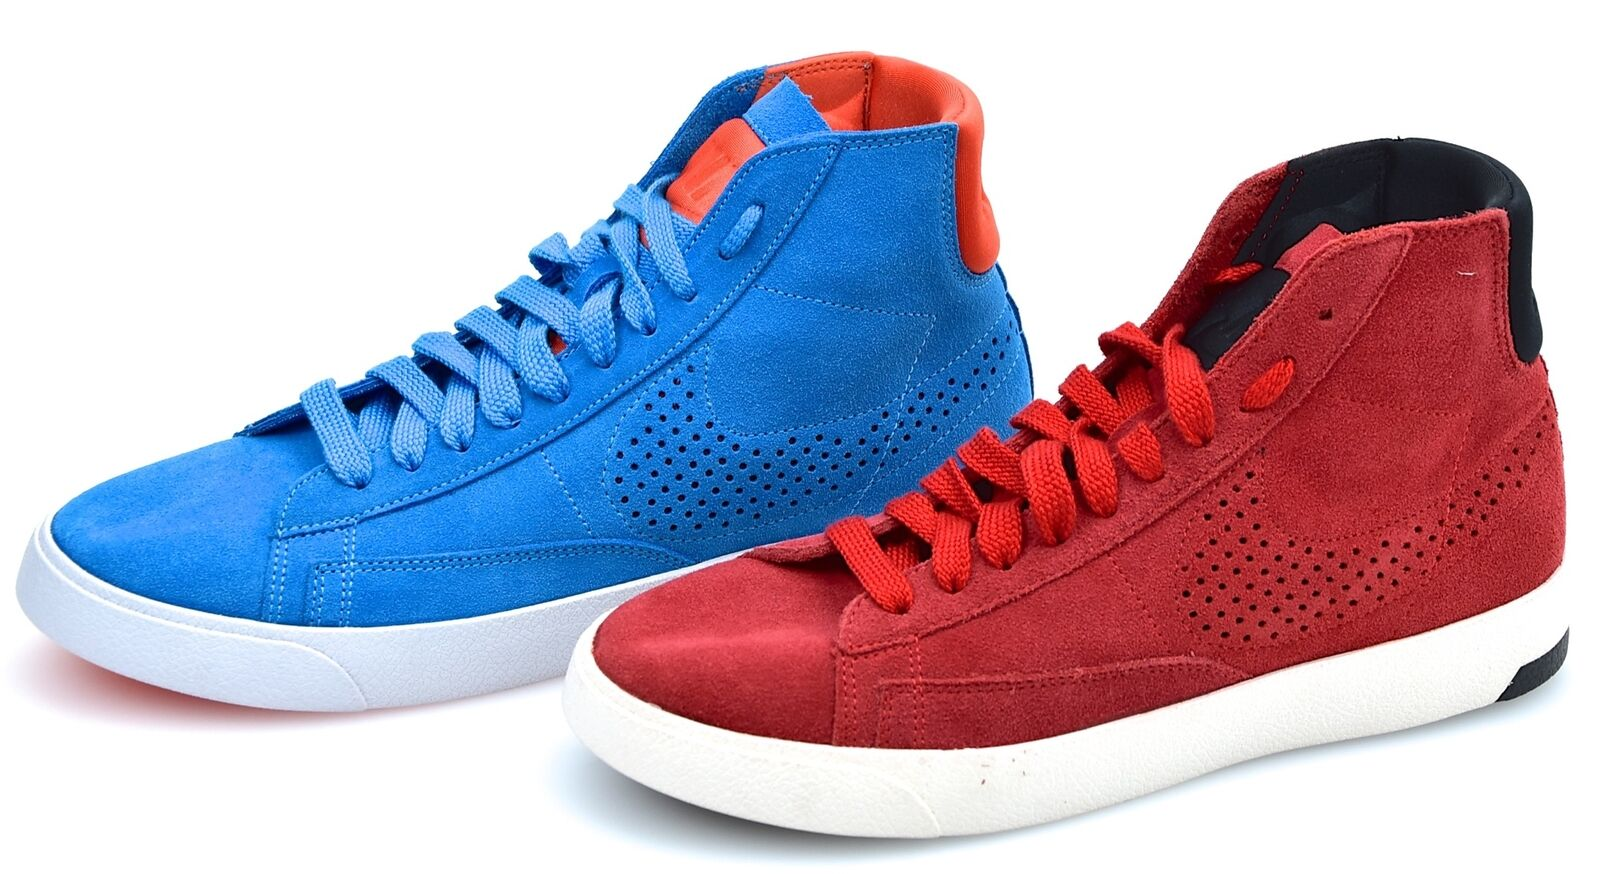 NIKE MAN SNEAKER SHOES CASUAL FREE TIME SUEDE CODE BLAZER LUX 599464 400 - 600